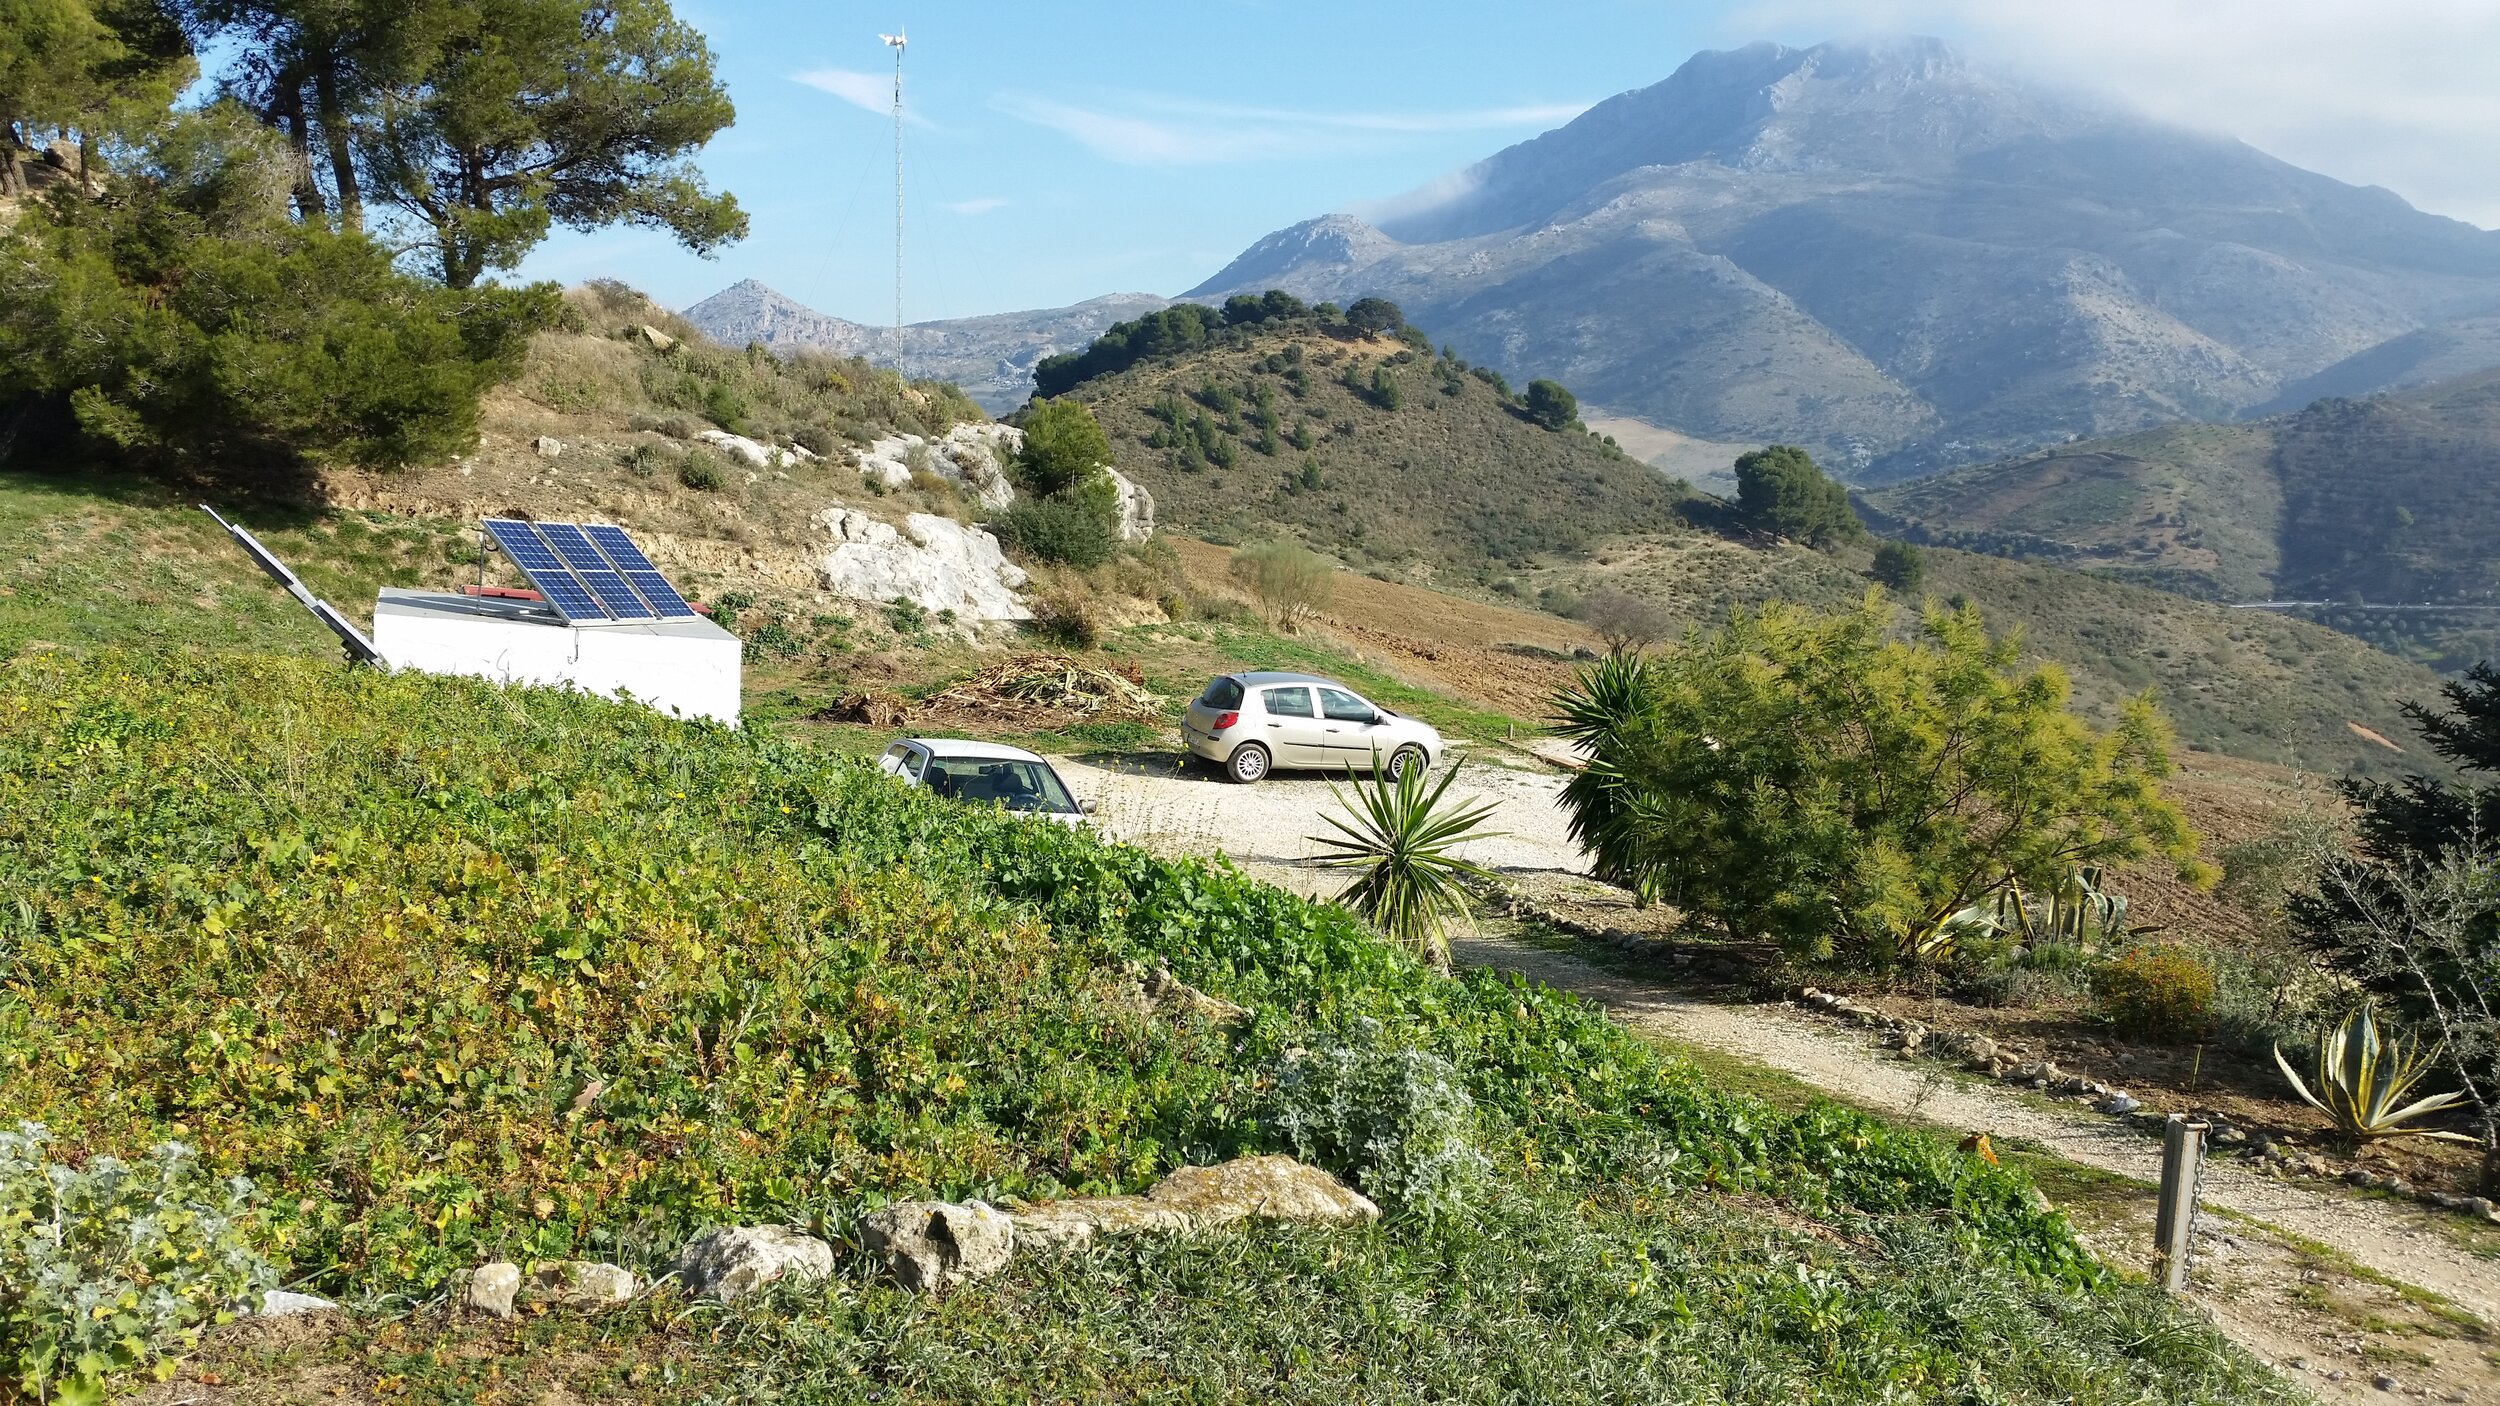 The solar provision on day 1